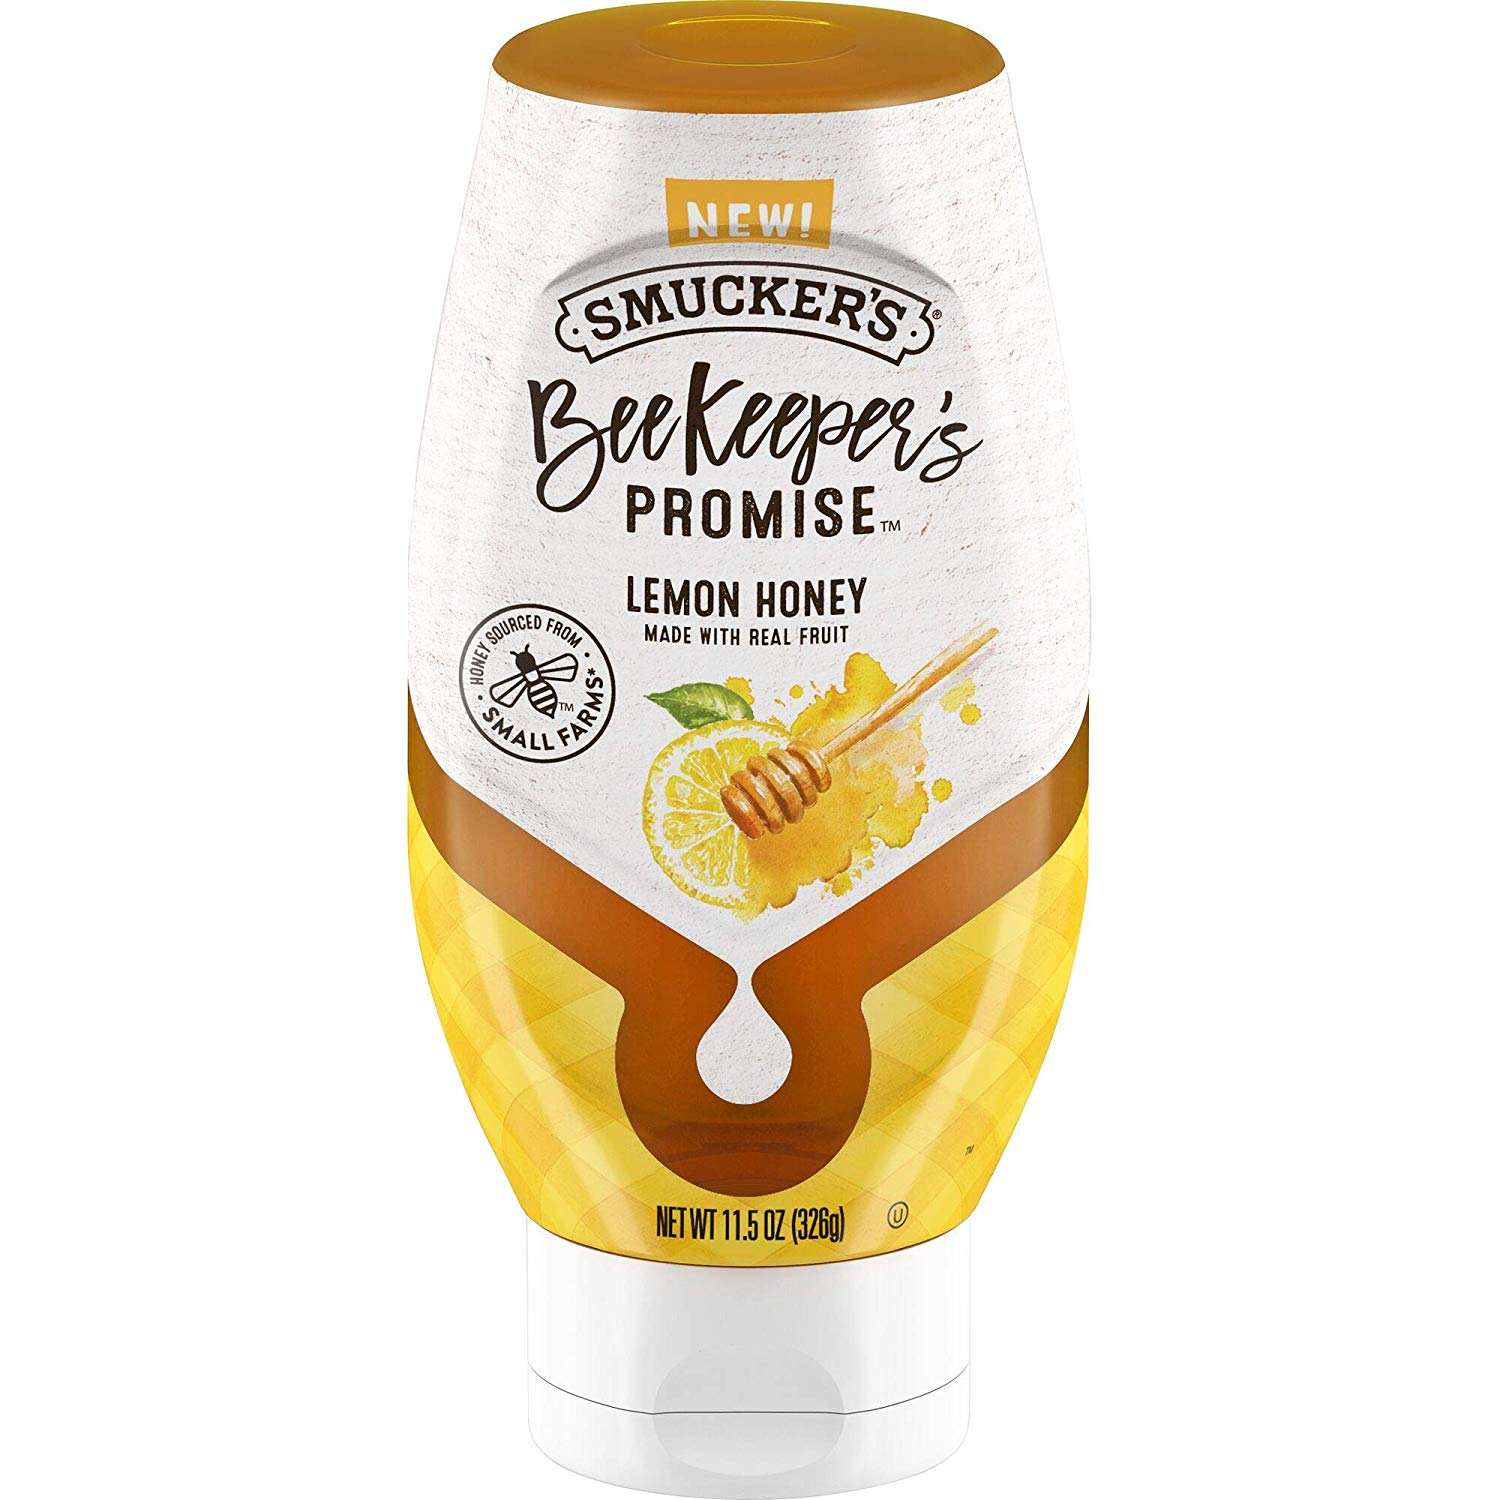 6 Pack Smucker's Beekeeper's Promise Lemon Honey only $8.12!